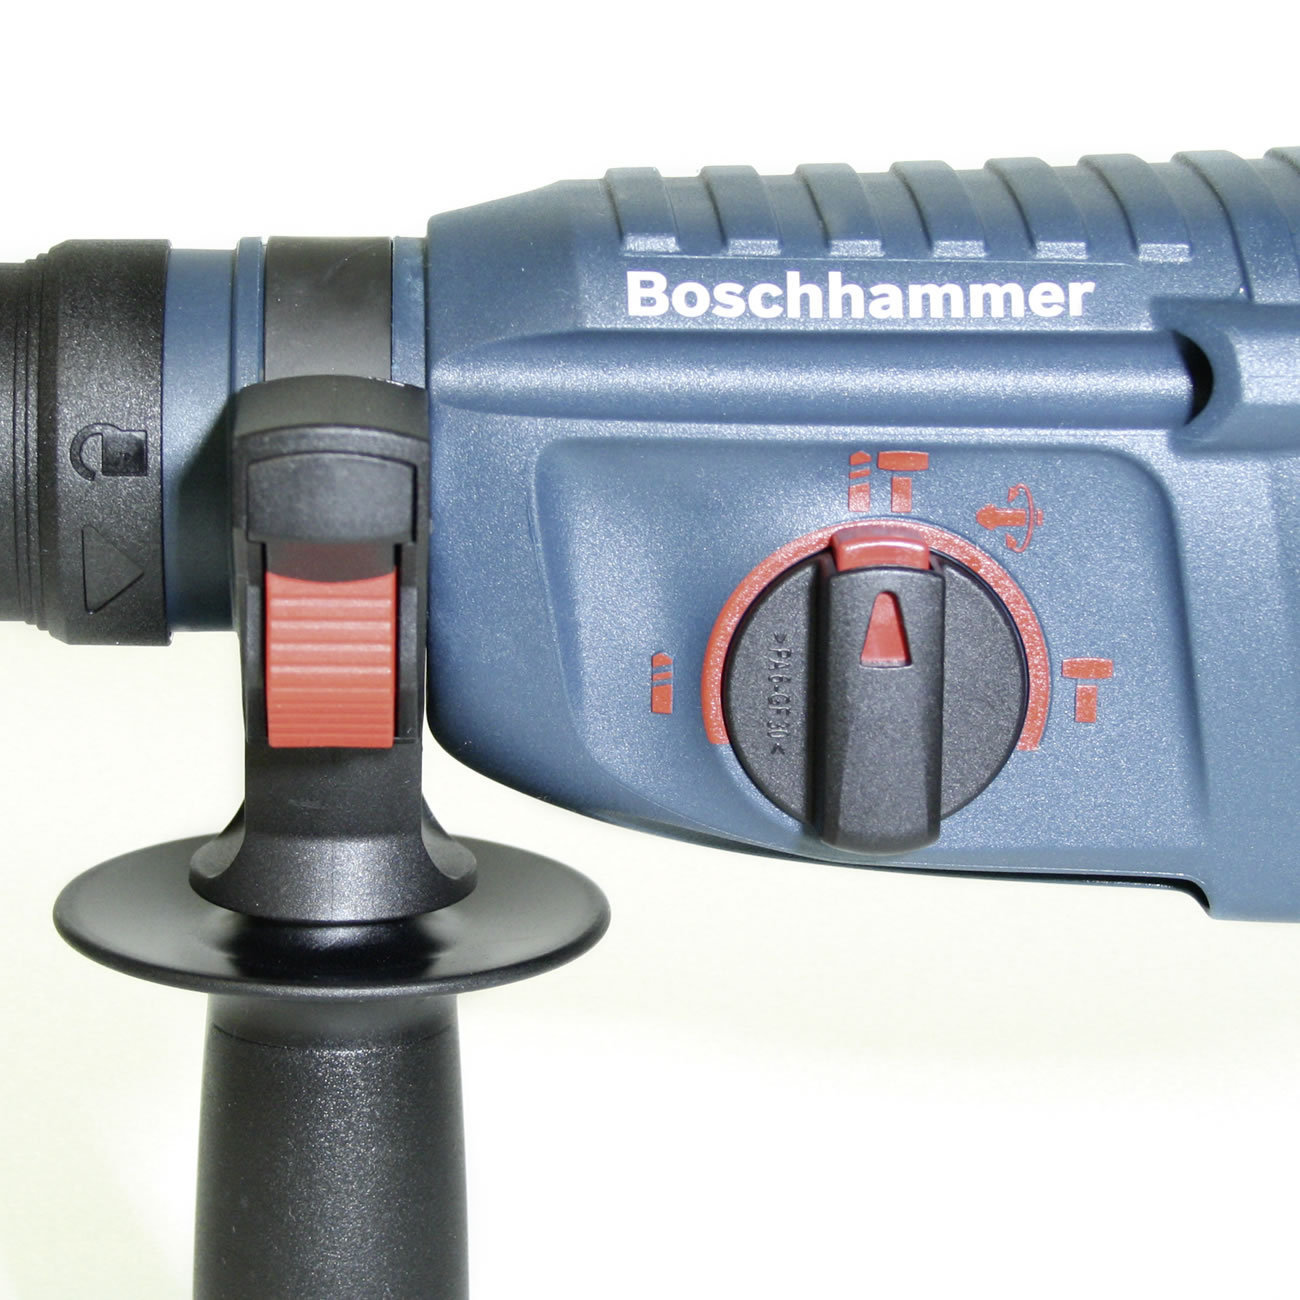 bosch bohrhammer gbh2600 sds koffer 0611254803 bohrmaschine schlagbohrmaschine ebay. Black Bedroom Furniture Sets. Home Design Ideas